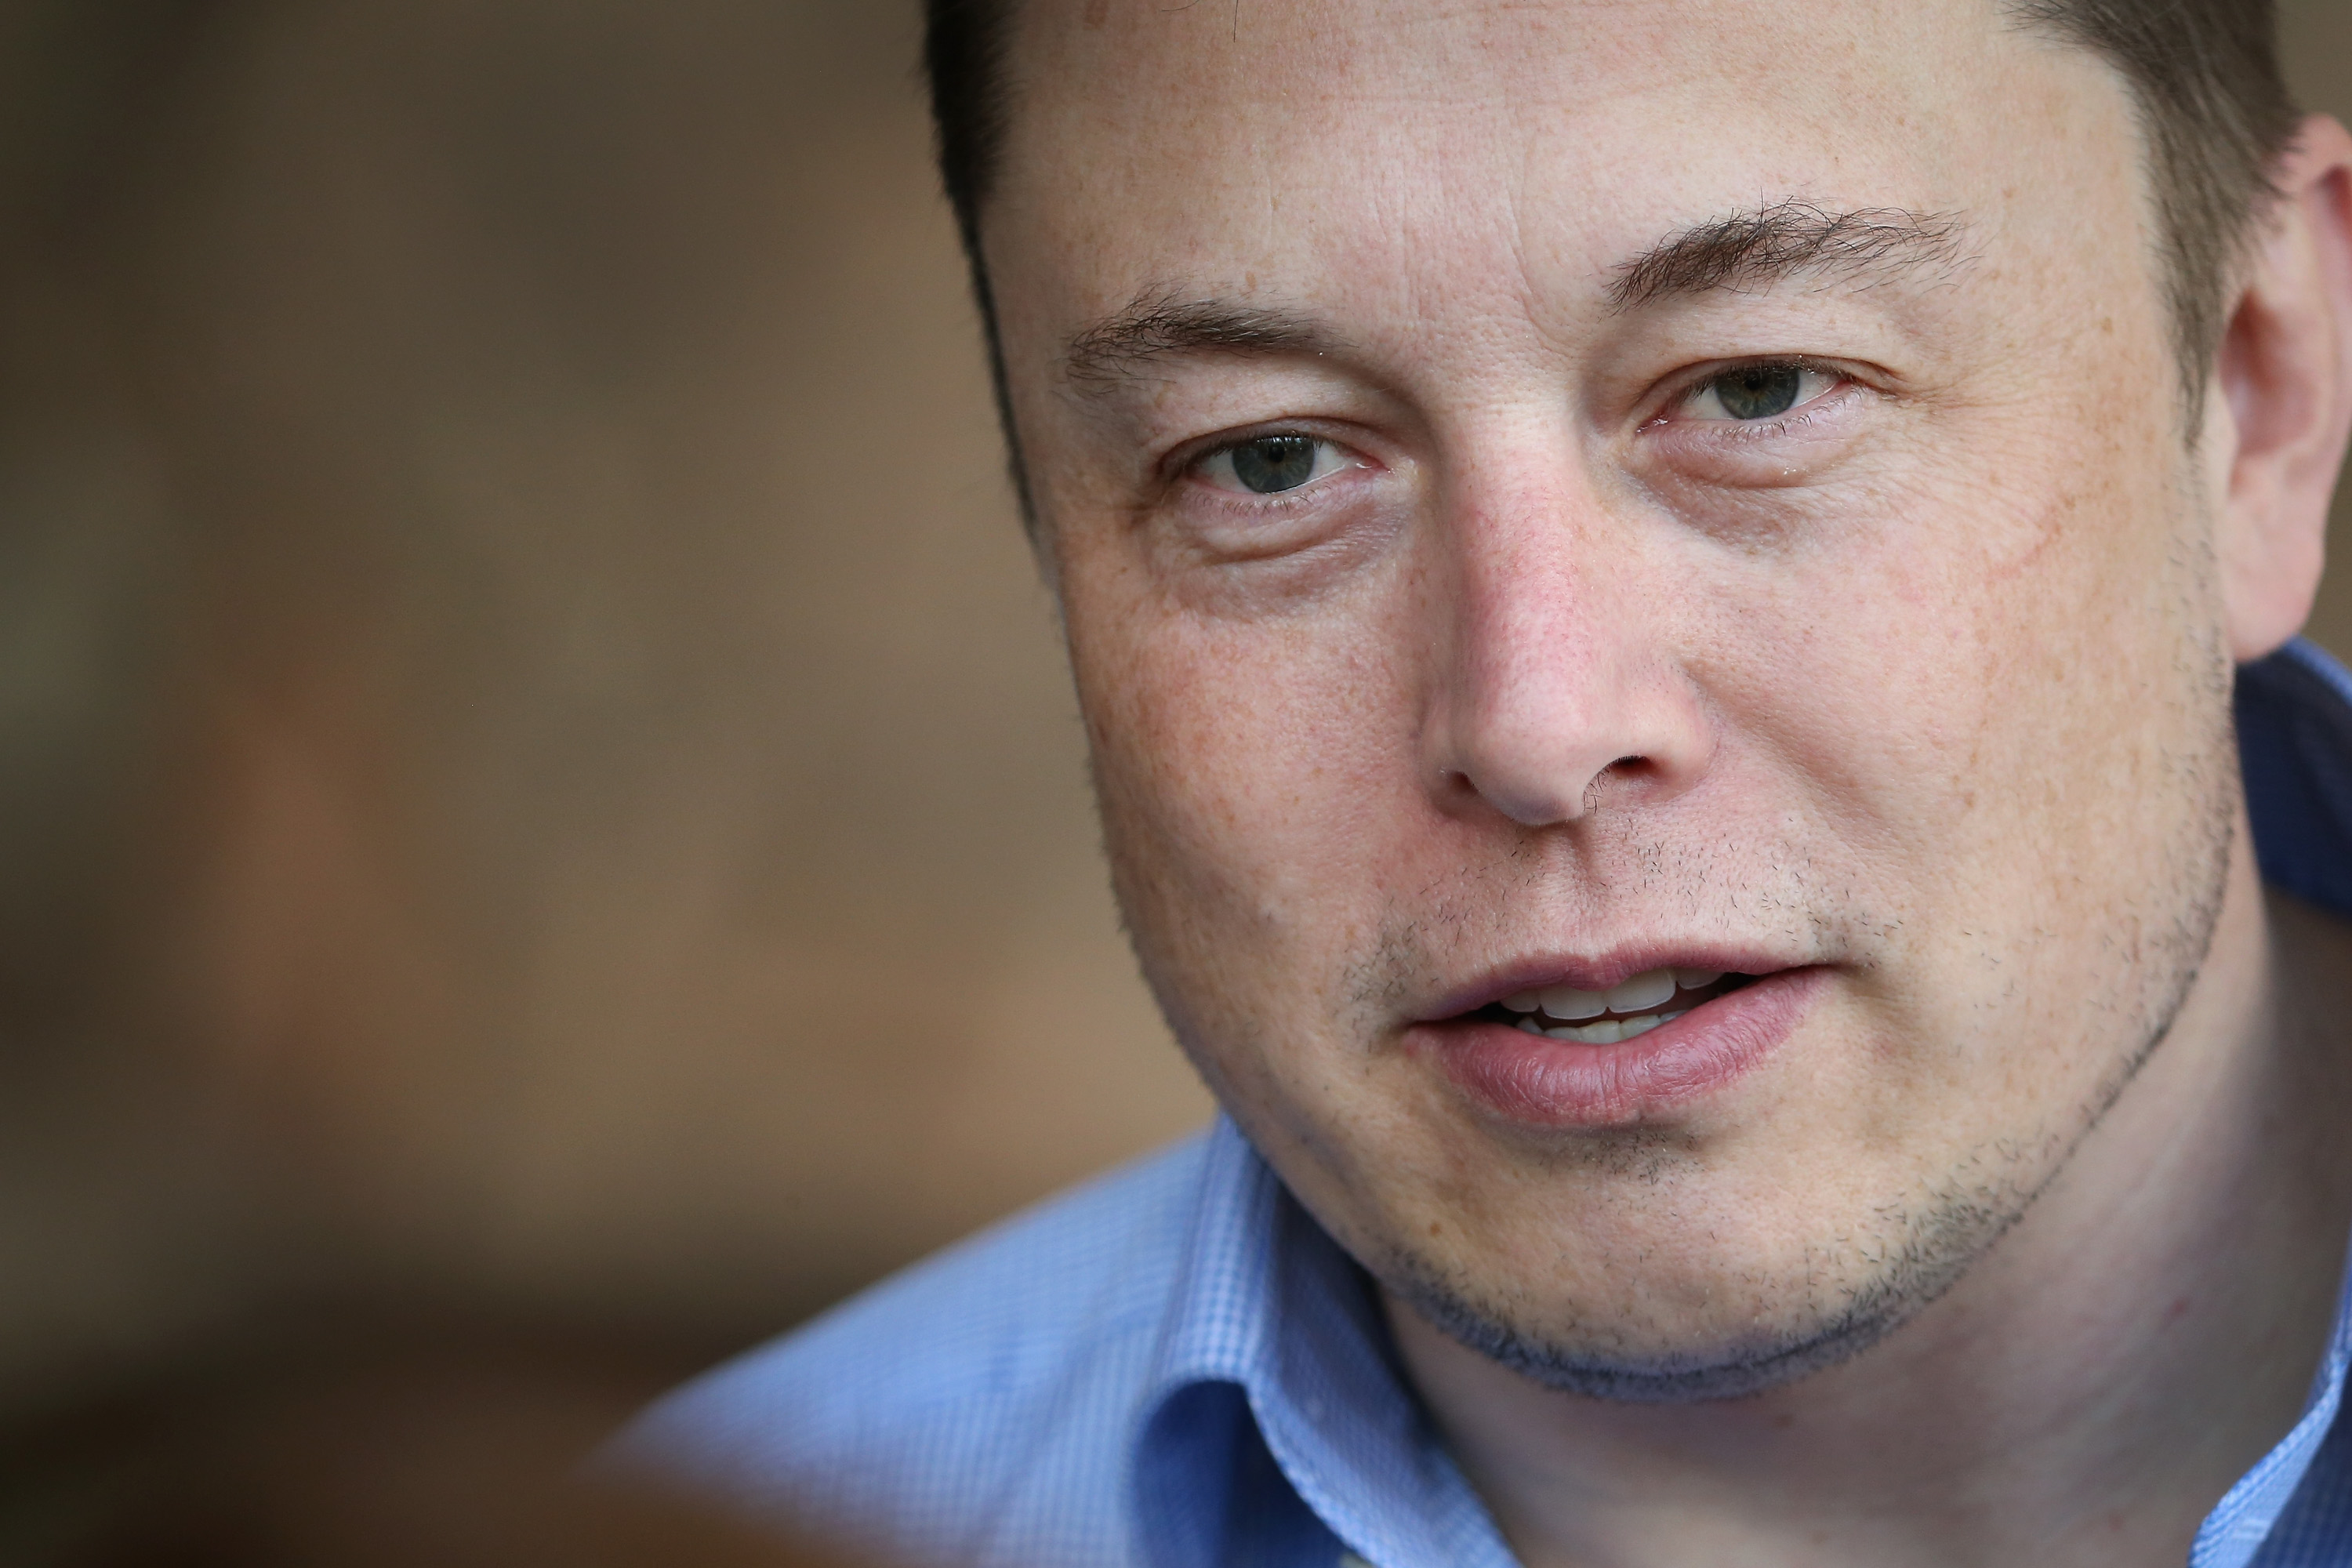 Elon Musk offers discounted solar panels and batteries after California blackouts